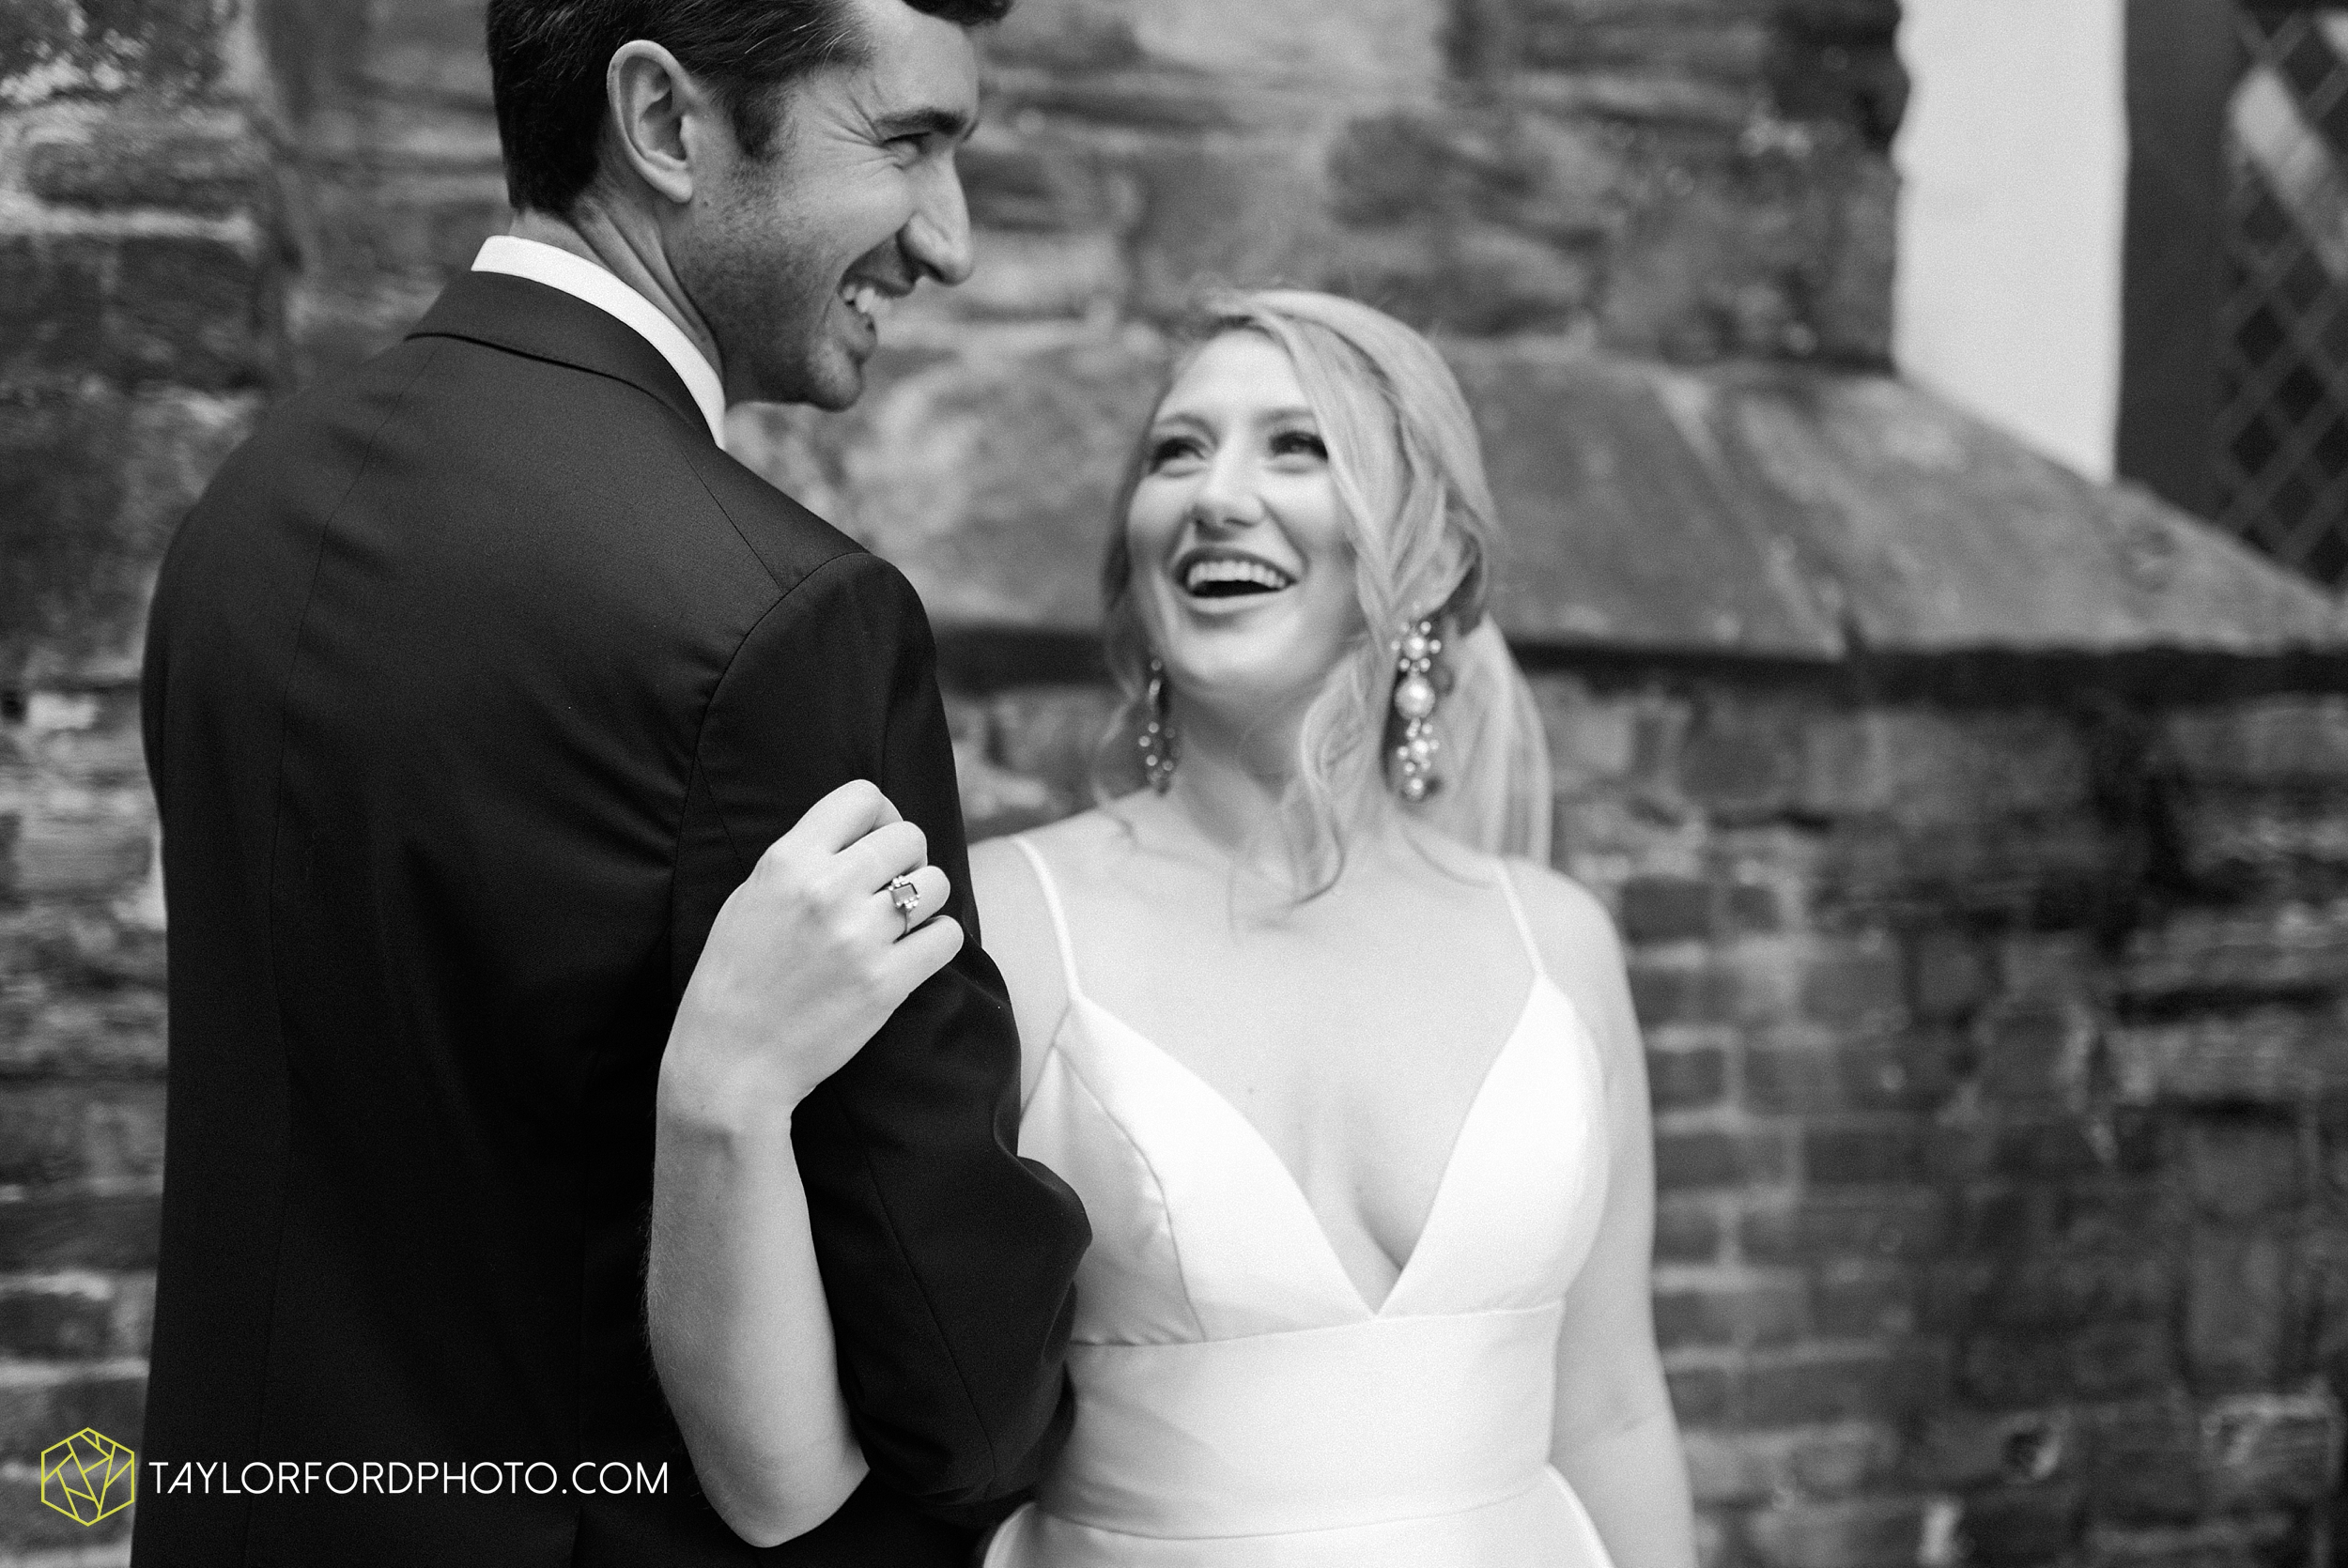 margot-may-evan-kohler-club-at-hillbrook-cleveland-chagrin-falls-outdoor-wedding-bhldn-gardenview-flowers-toledo-photographer-taylor-ford-photographer_9494.jpg